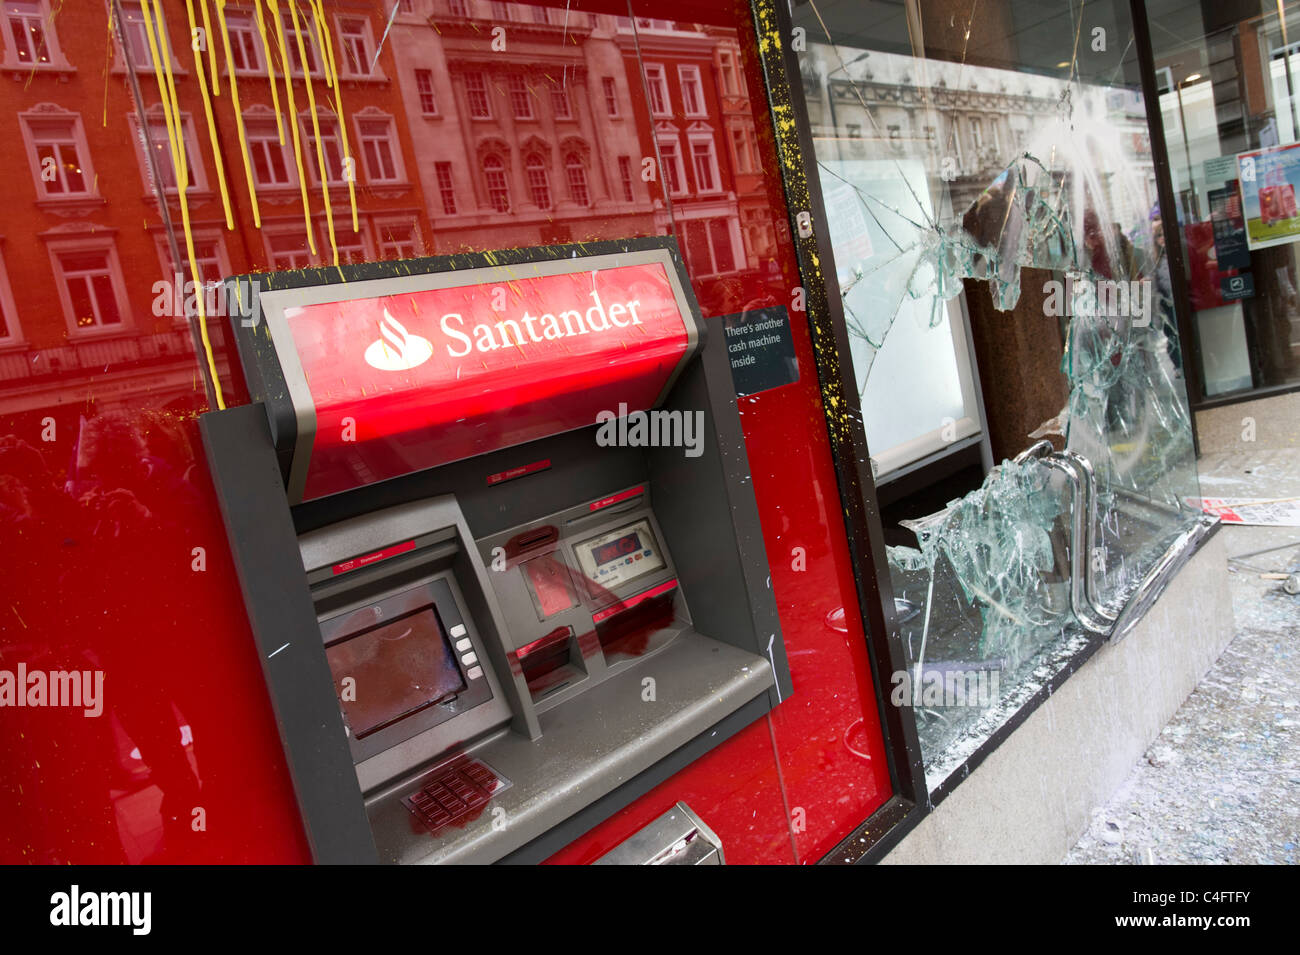 Vandalised bank ATM and smashed window broken by anti capitalists protesters, London, UK - Stock Image